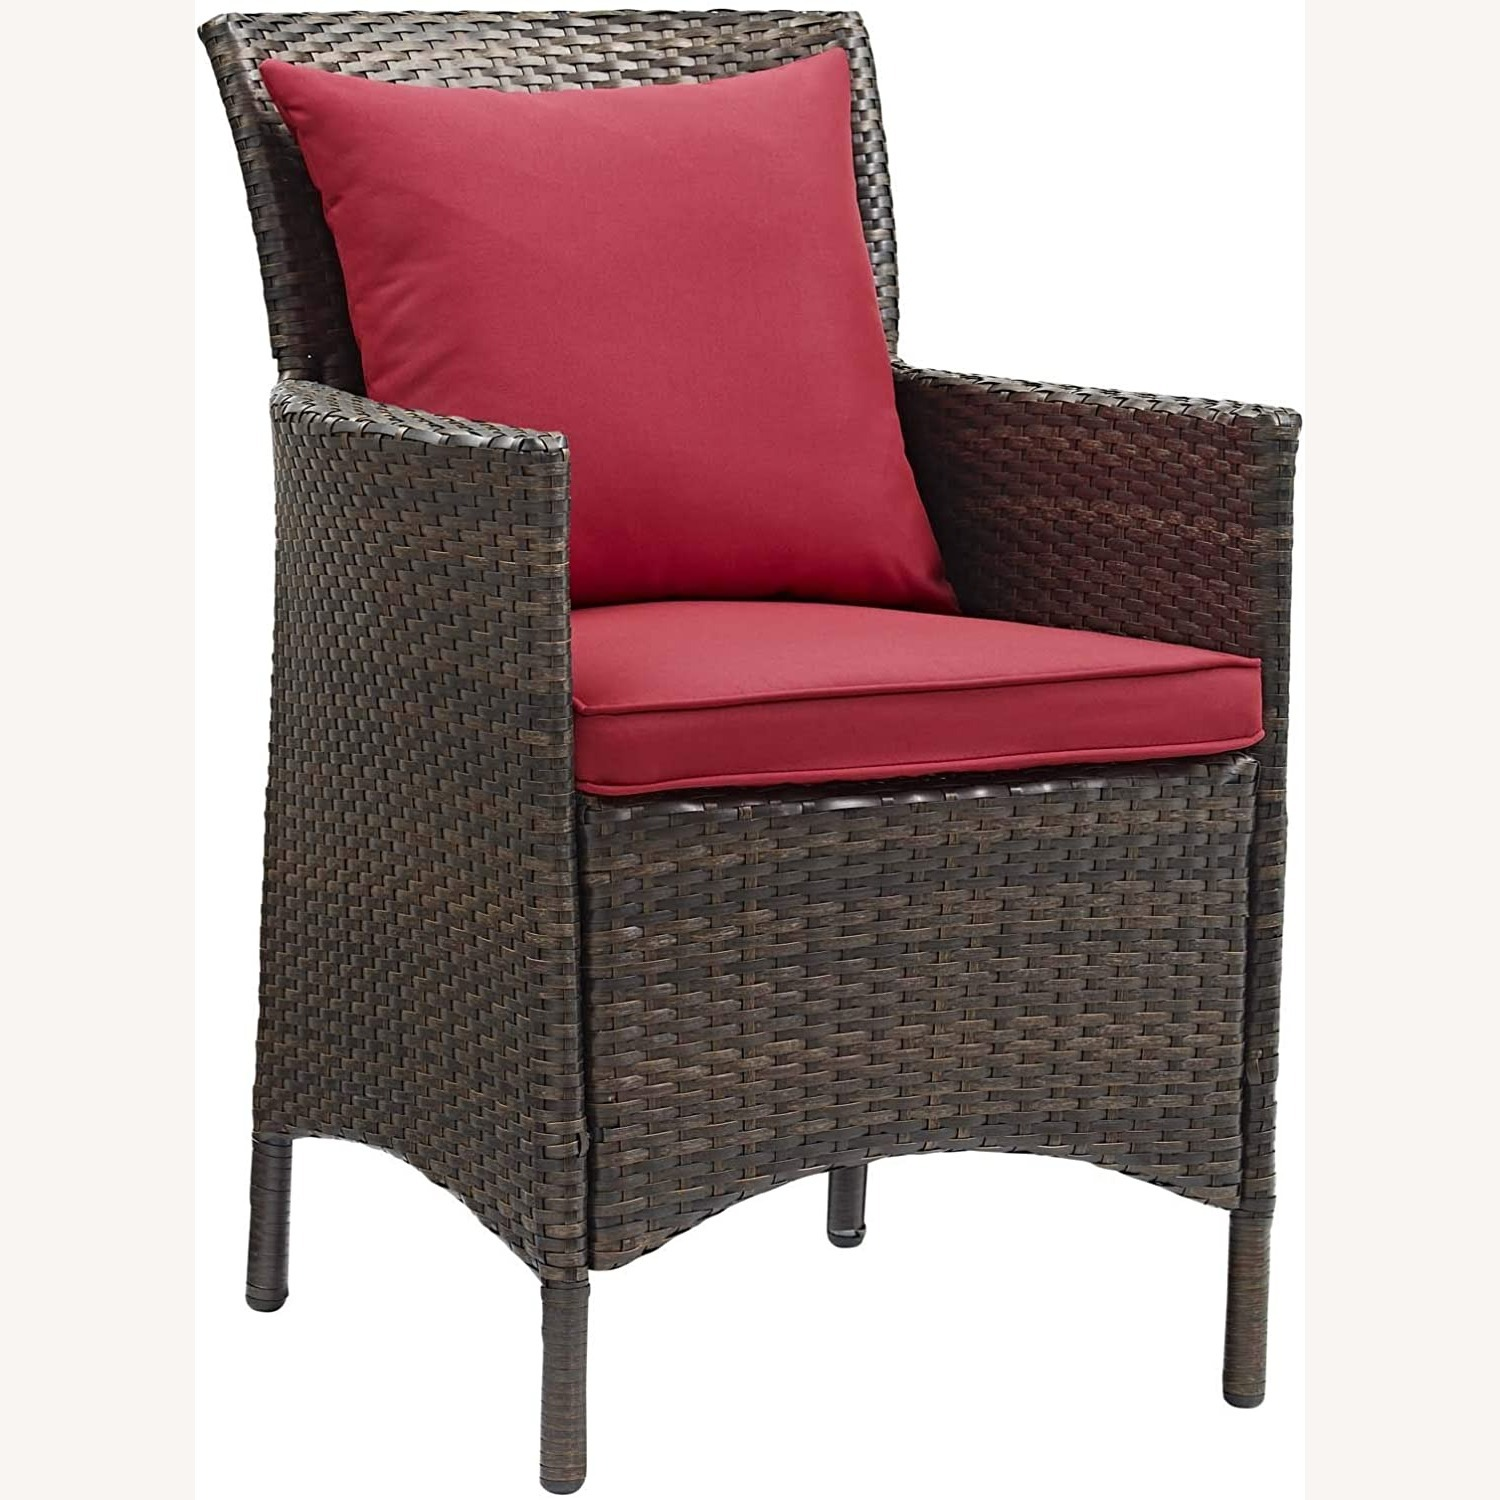 Modern 5-Piece Patio Dining Set In Brown & Red - image-1